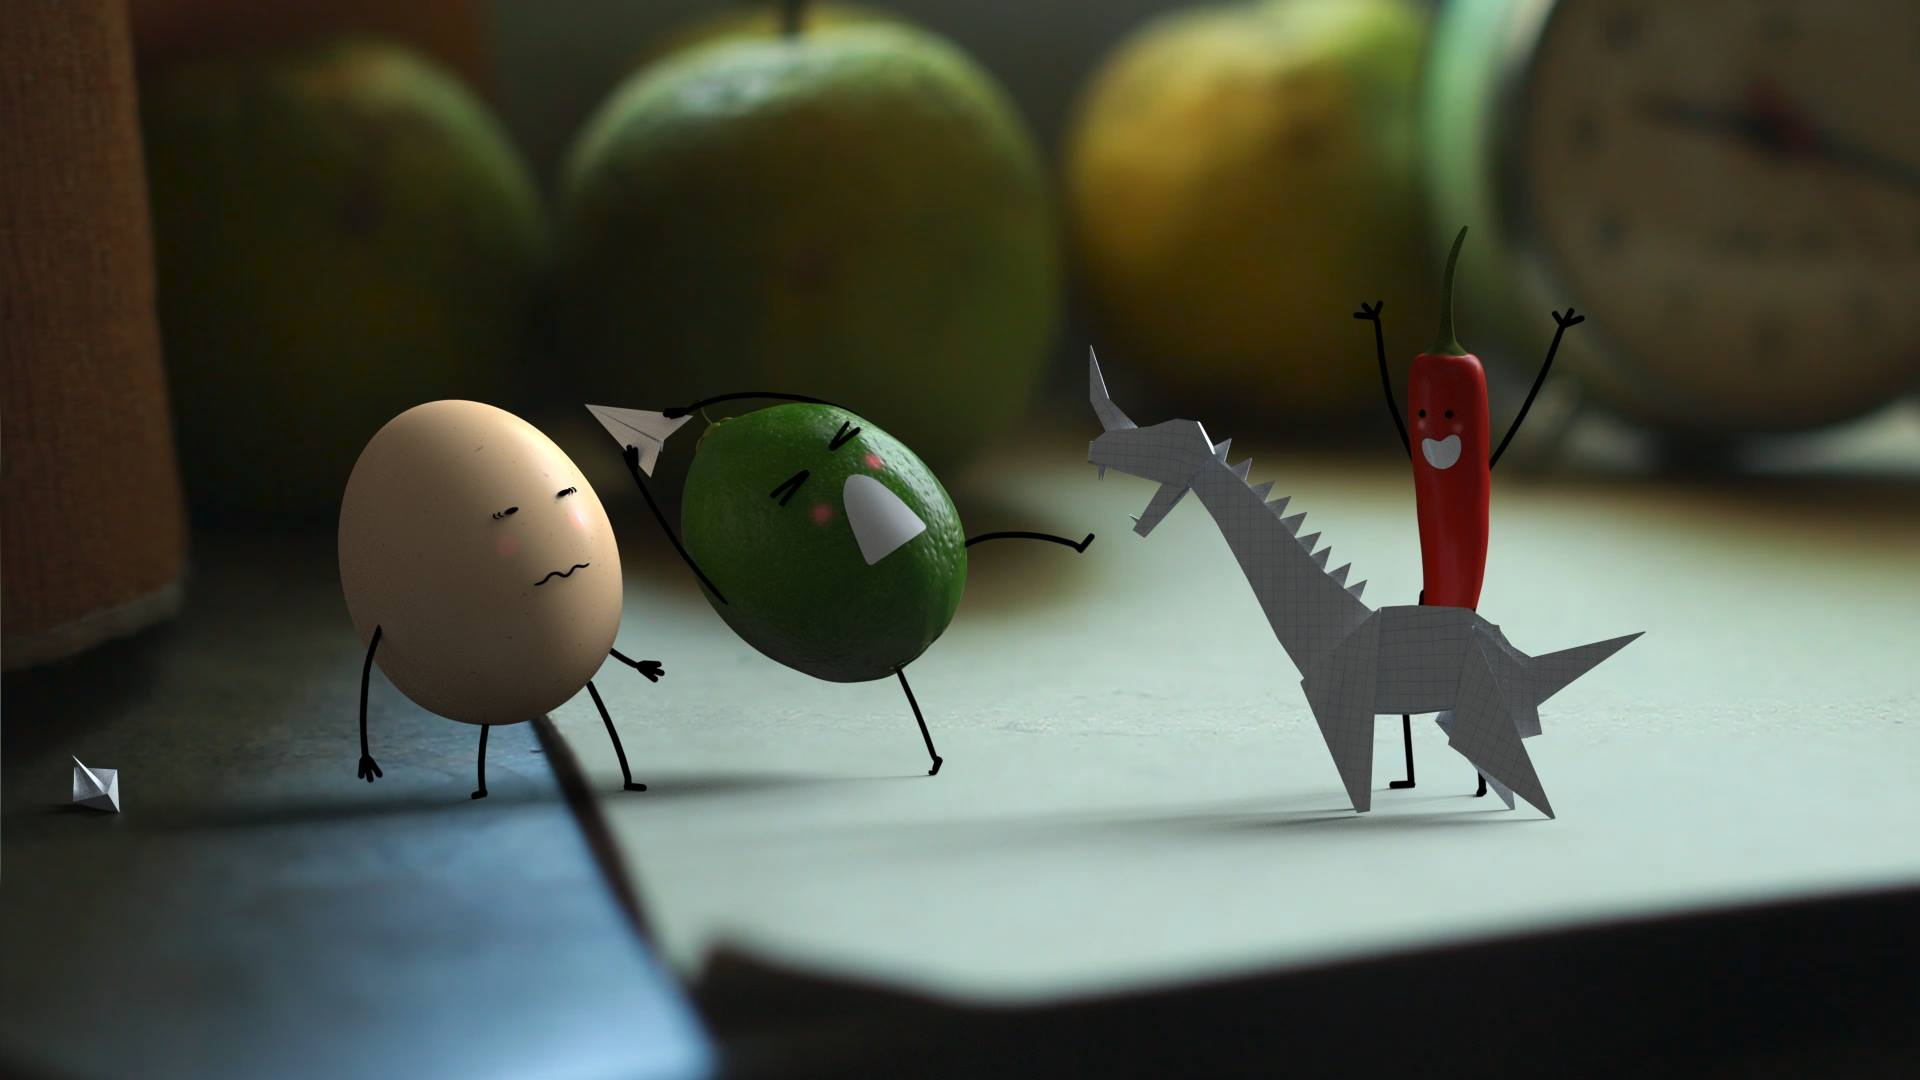 The Adventure of Egg, Lime & Chilly: Super Short Film